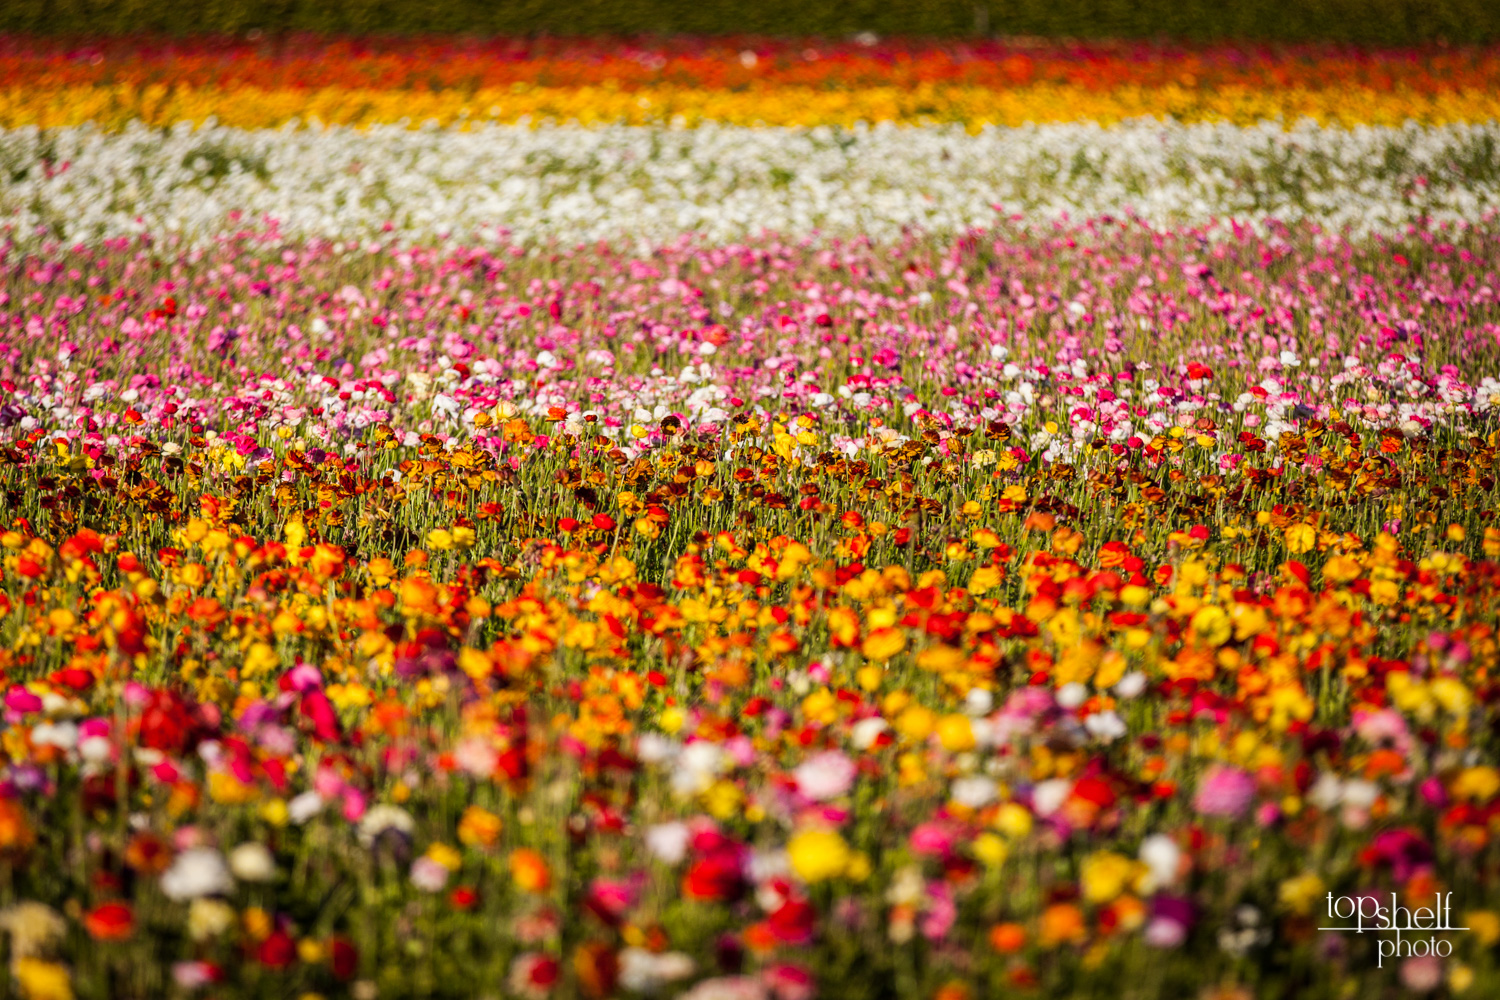 carlsbad-flower-fields-wedding-san-diego-top-shelf-photo-12.jpg